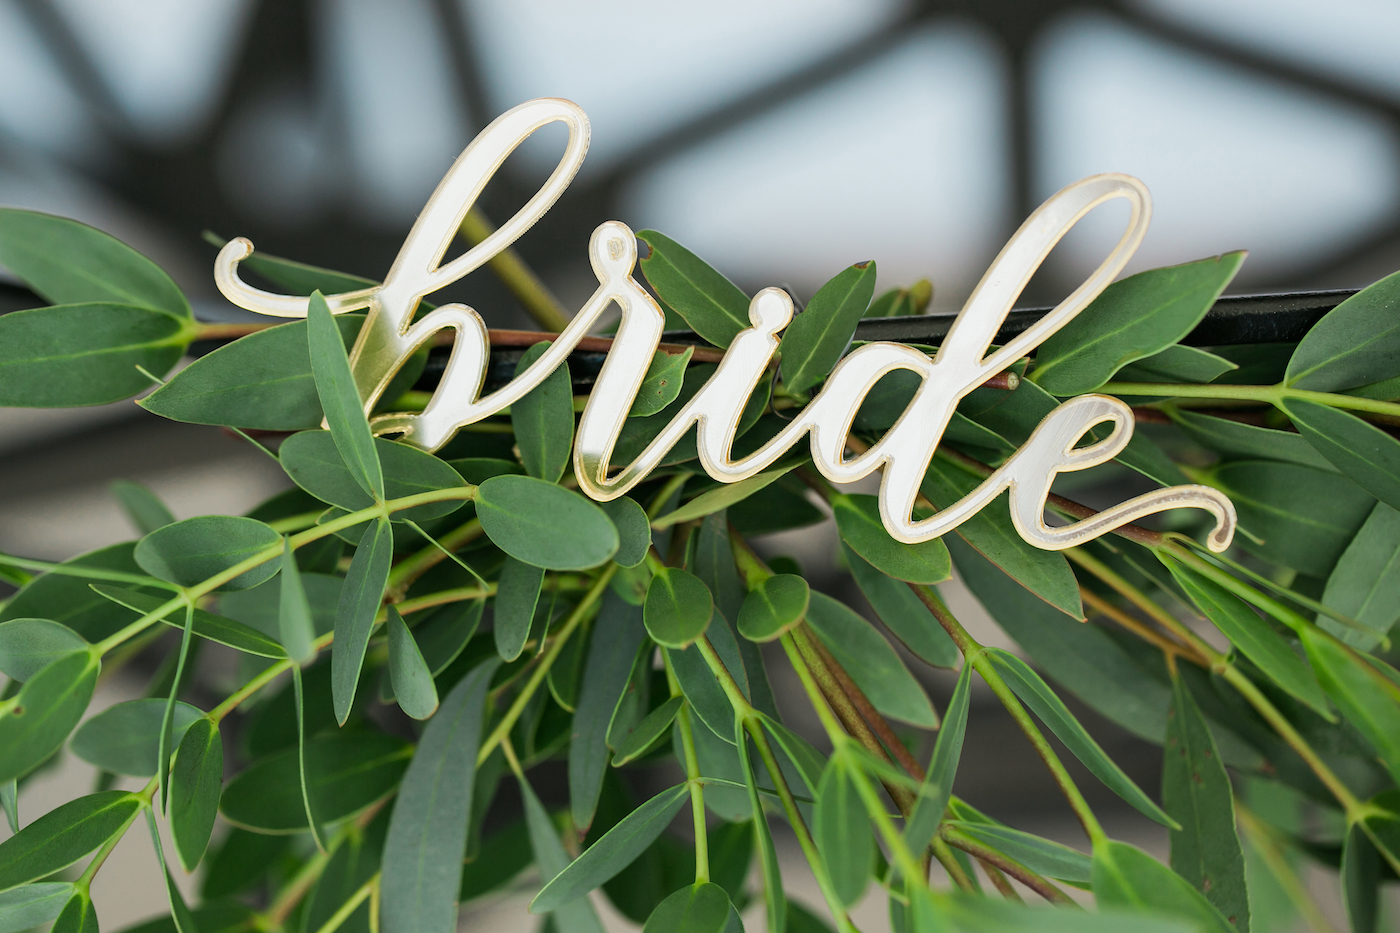 Laser cut gold bride signage for wedding styled by international wedding planner Elisabetta White